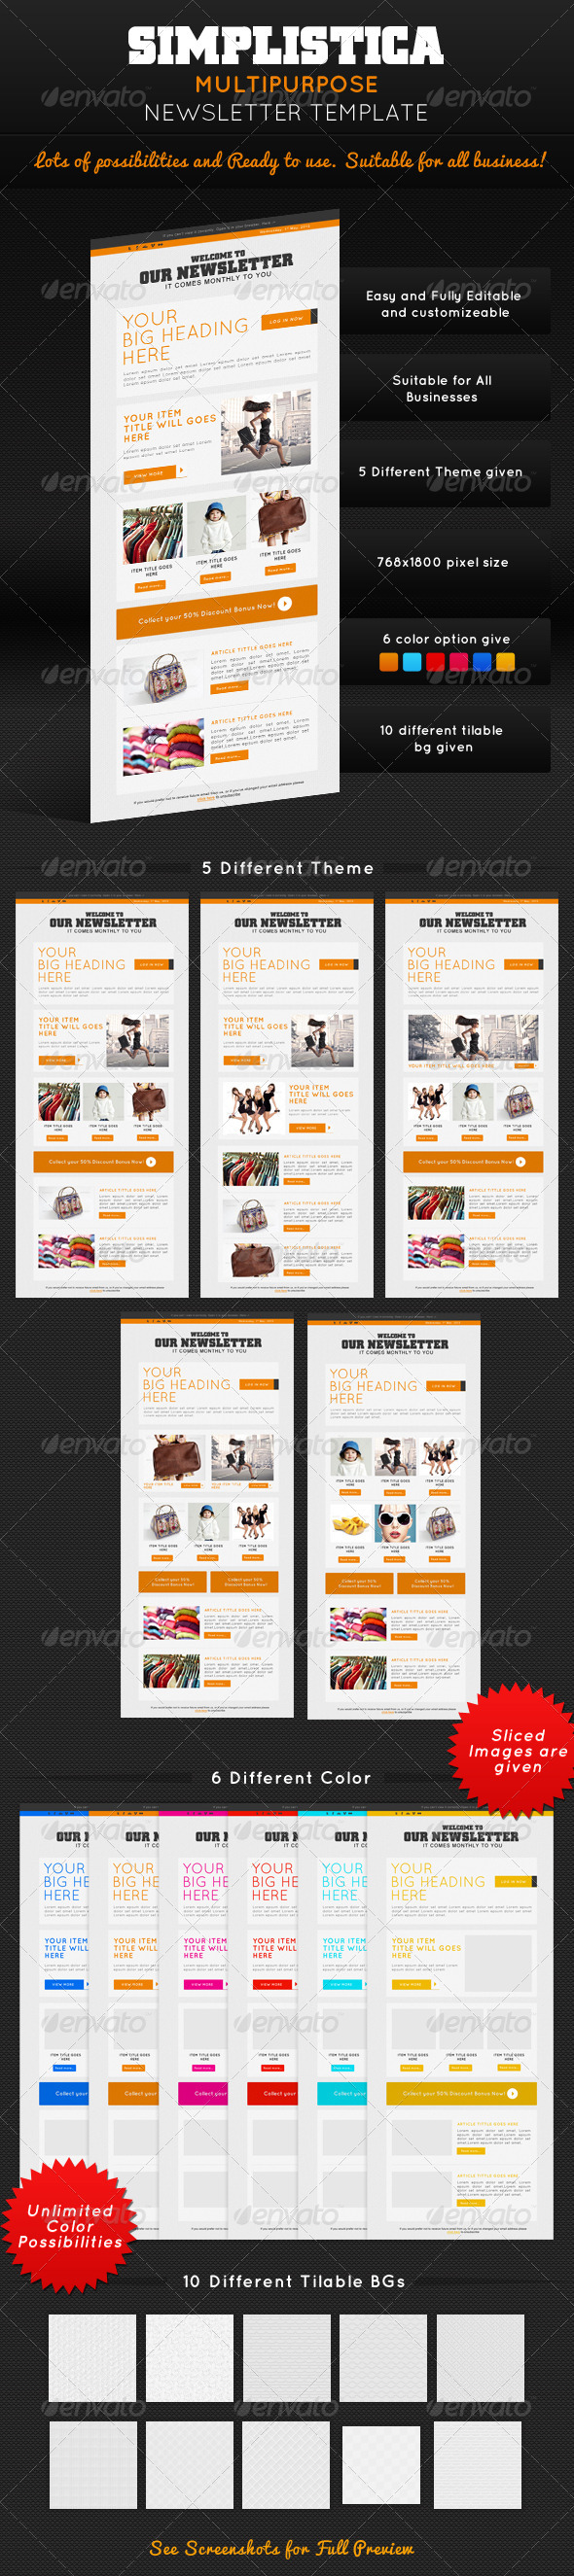 GraphicRiver Simplistica Multipurpose E-Newsletter Template 4634907